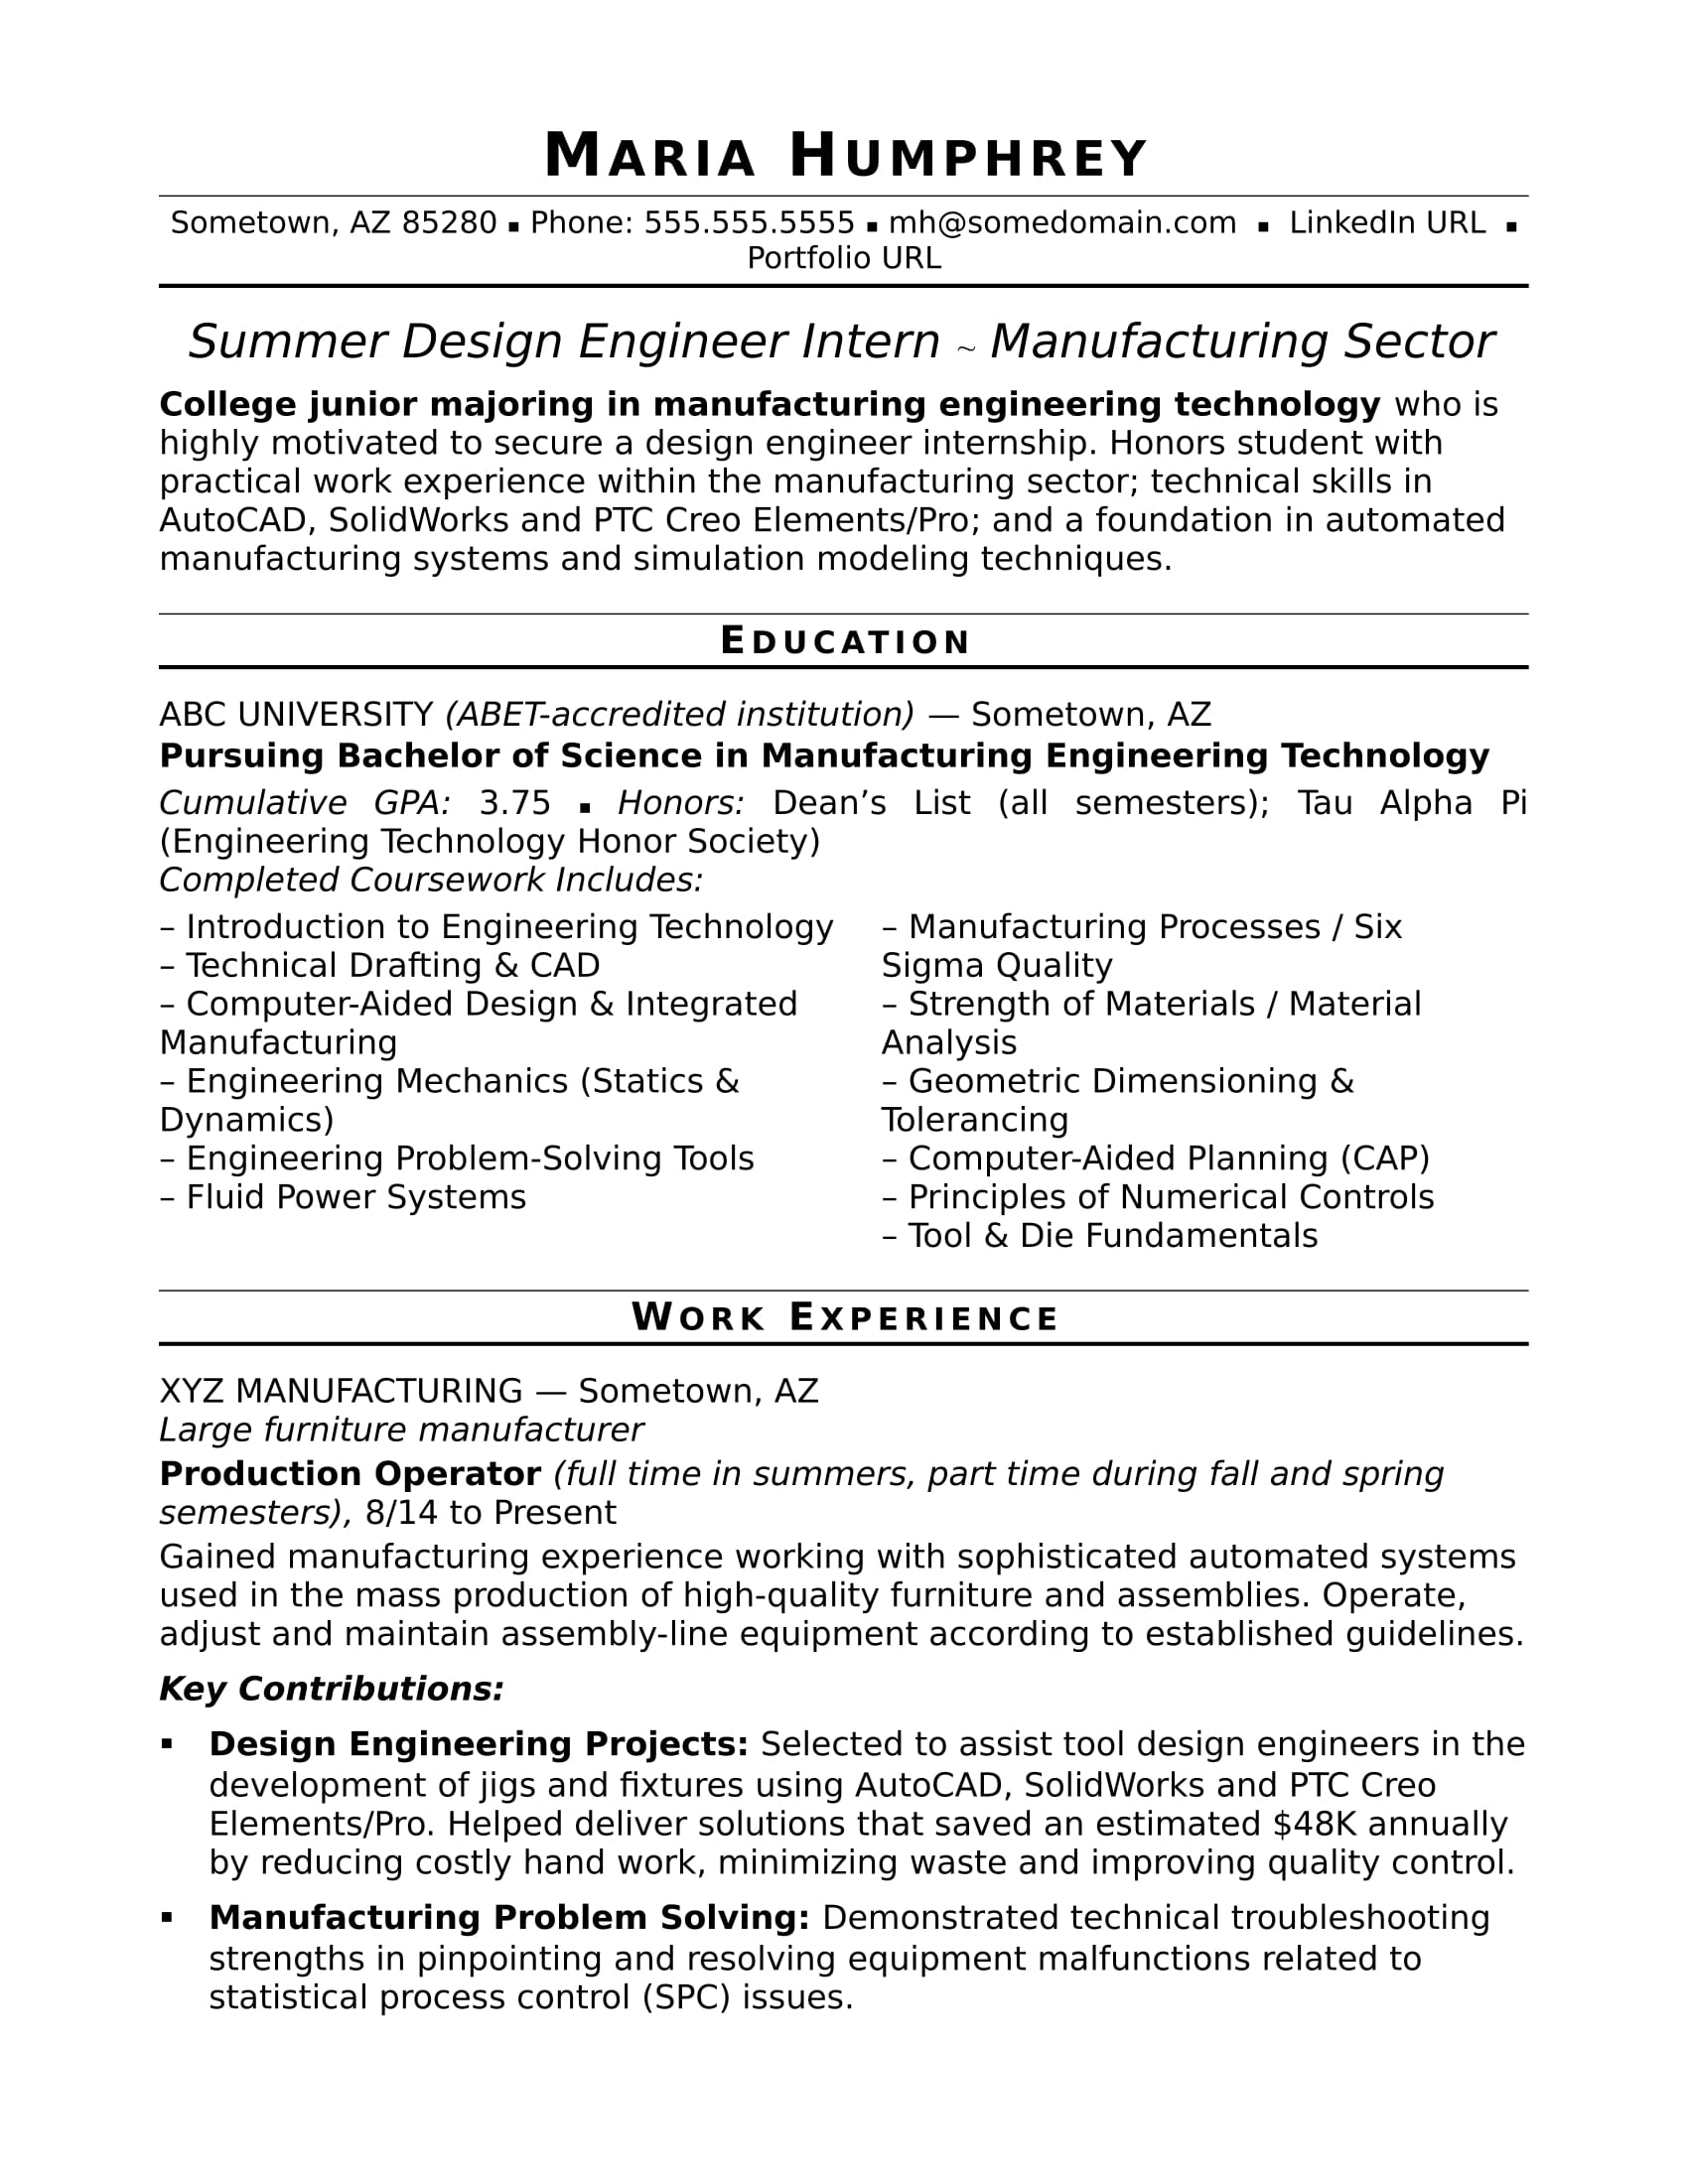 sample resume for an entry level design engineer - How To Write A Entry Level Resume